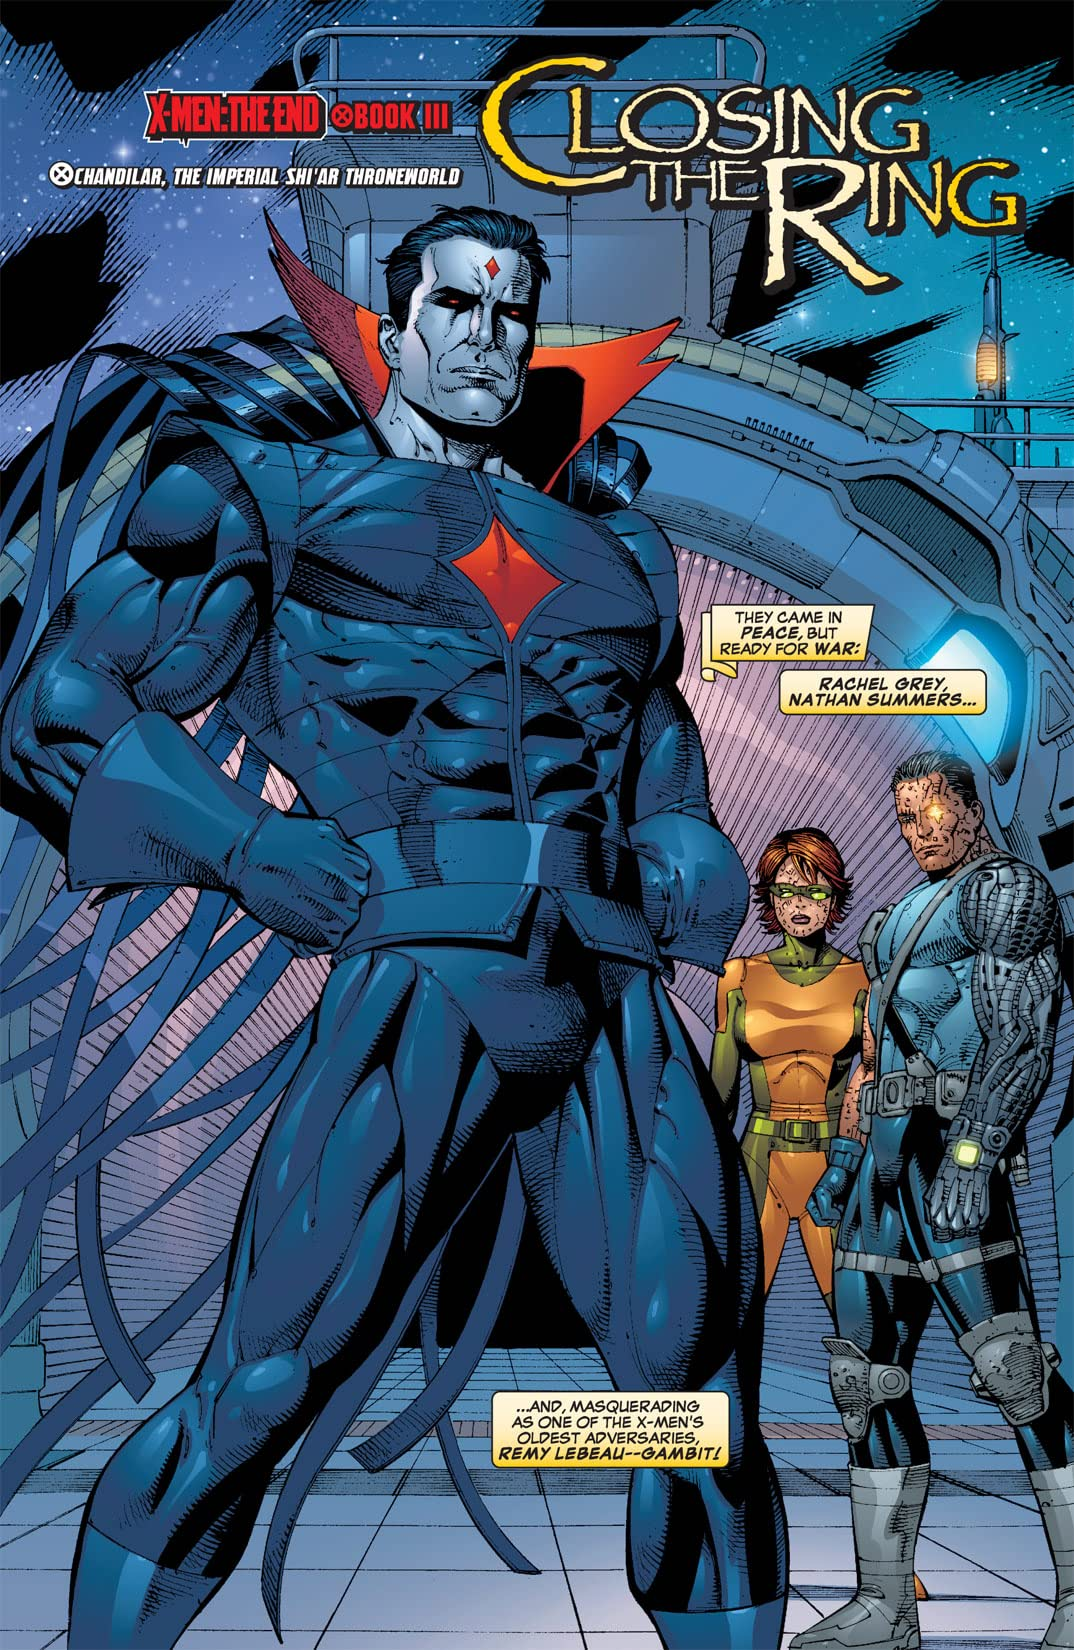 X-Men: The End #2: Men and X-Men